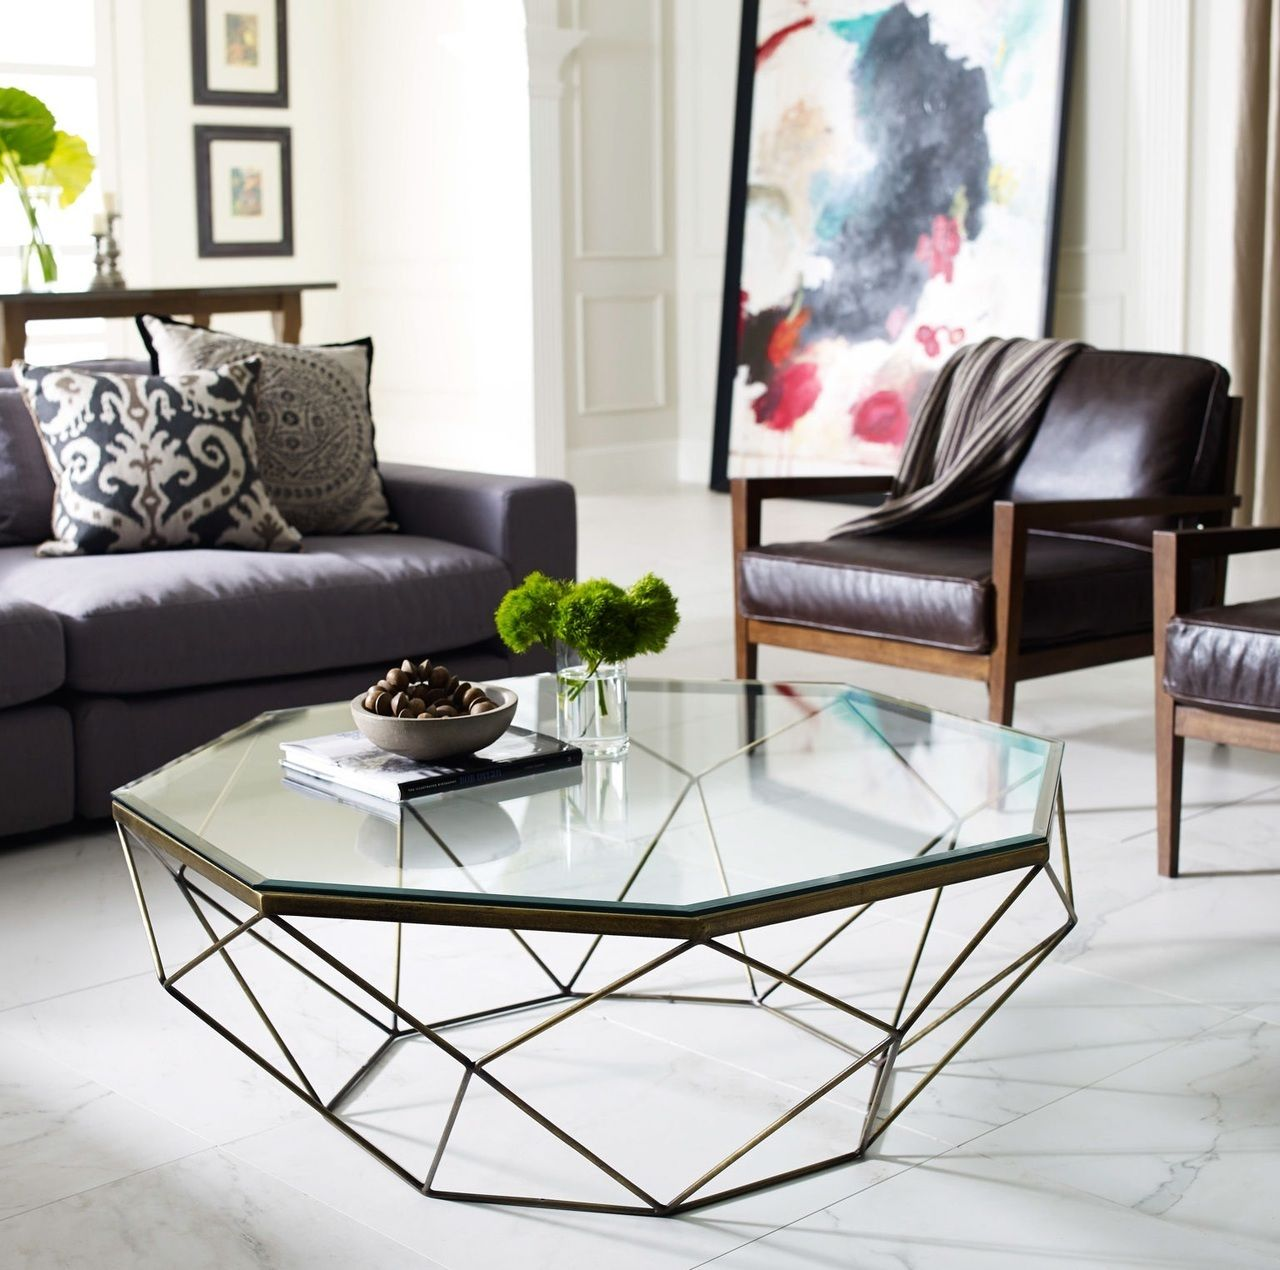 Geometric Antique Brass Coffee Table With Glass Top Coffee Table Geometric Coffee Table Glass Table Living Room [ 1270 x 1280 Pixel ]